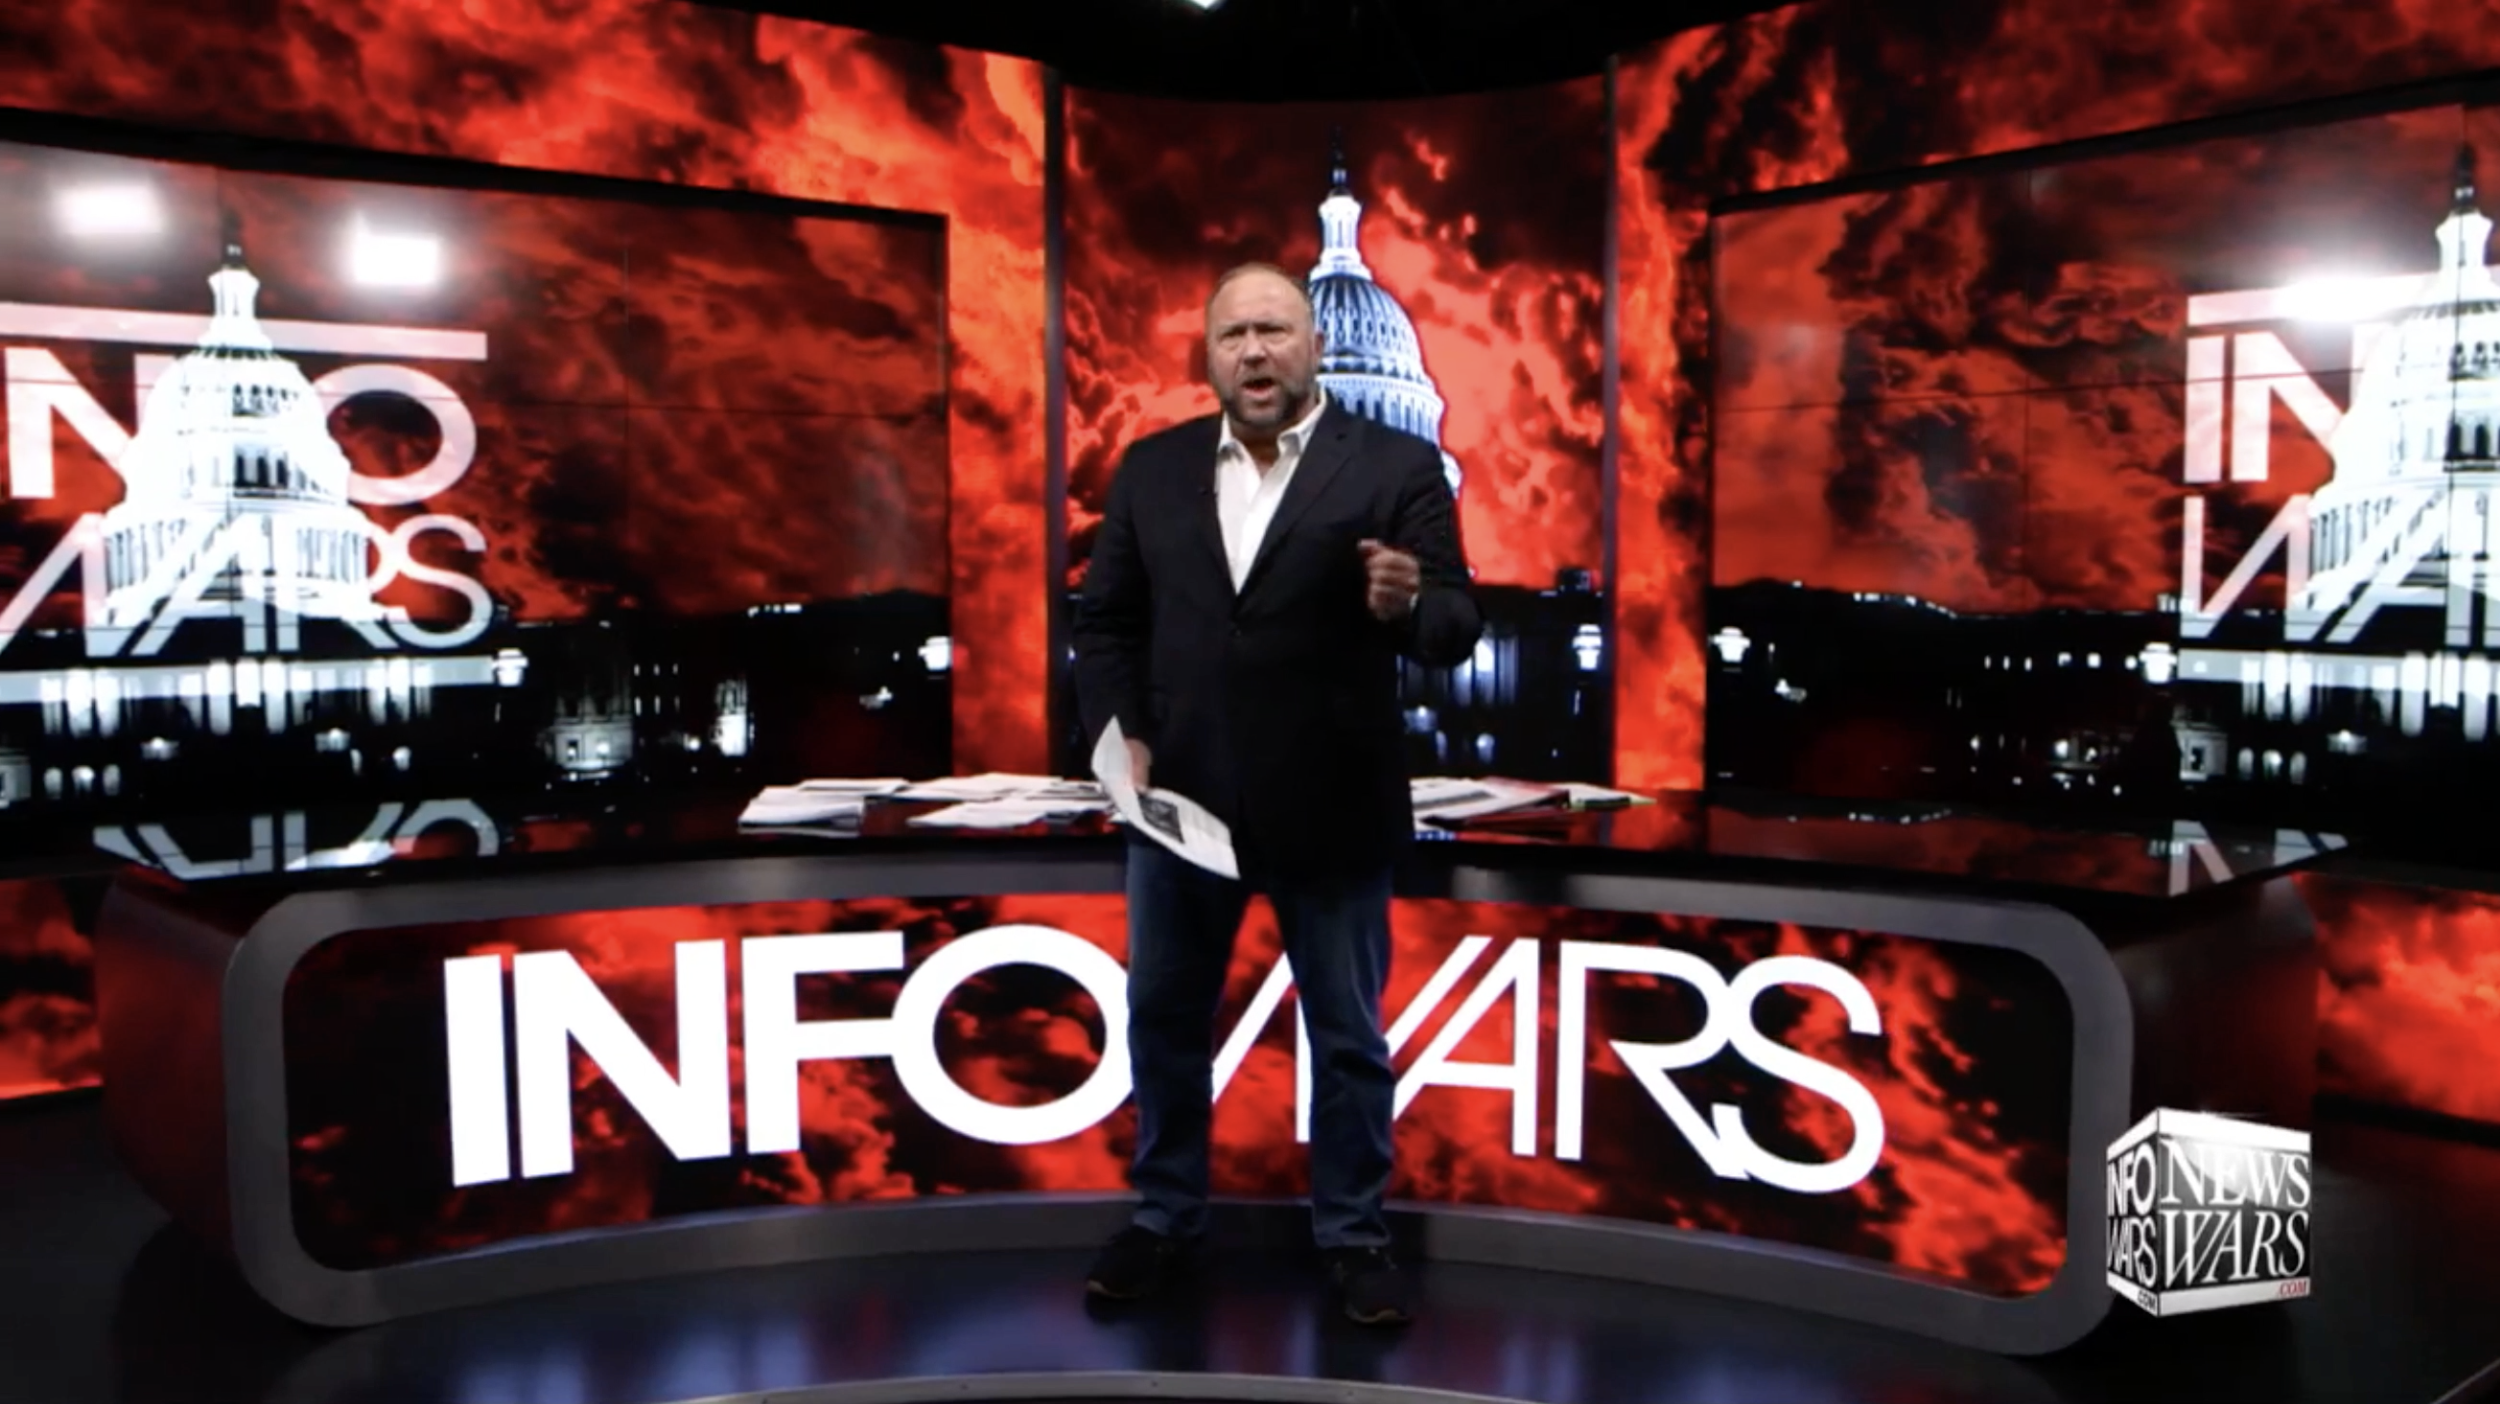 Alex Jones Infowars 2 12 2020